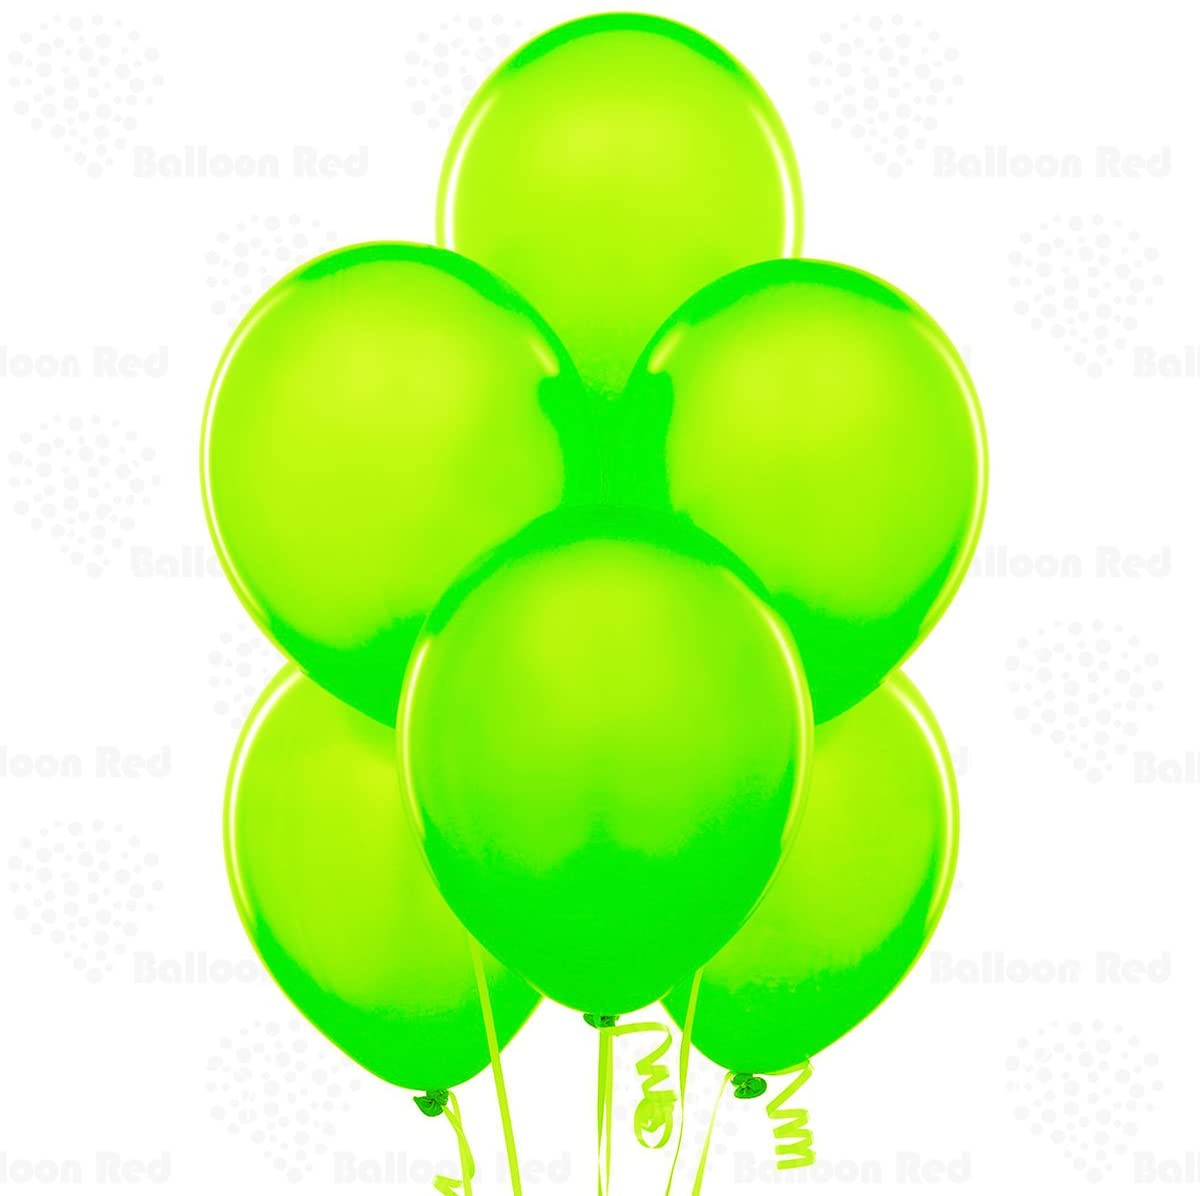 Lime 10 Inch Latex Balloons 100 Pack Thickened Extra Strong for Baby Shower Garland Wedding Photo Booth Birthday Party Supplies Arch Decoration Engagement Anniversary Christmas Festival